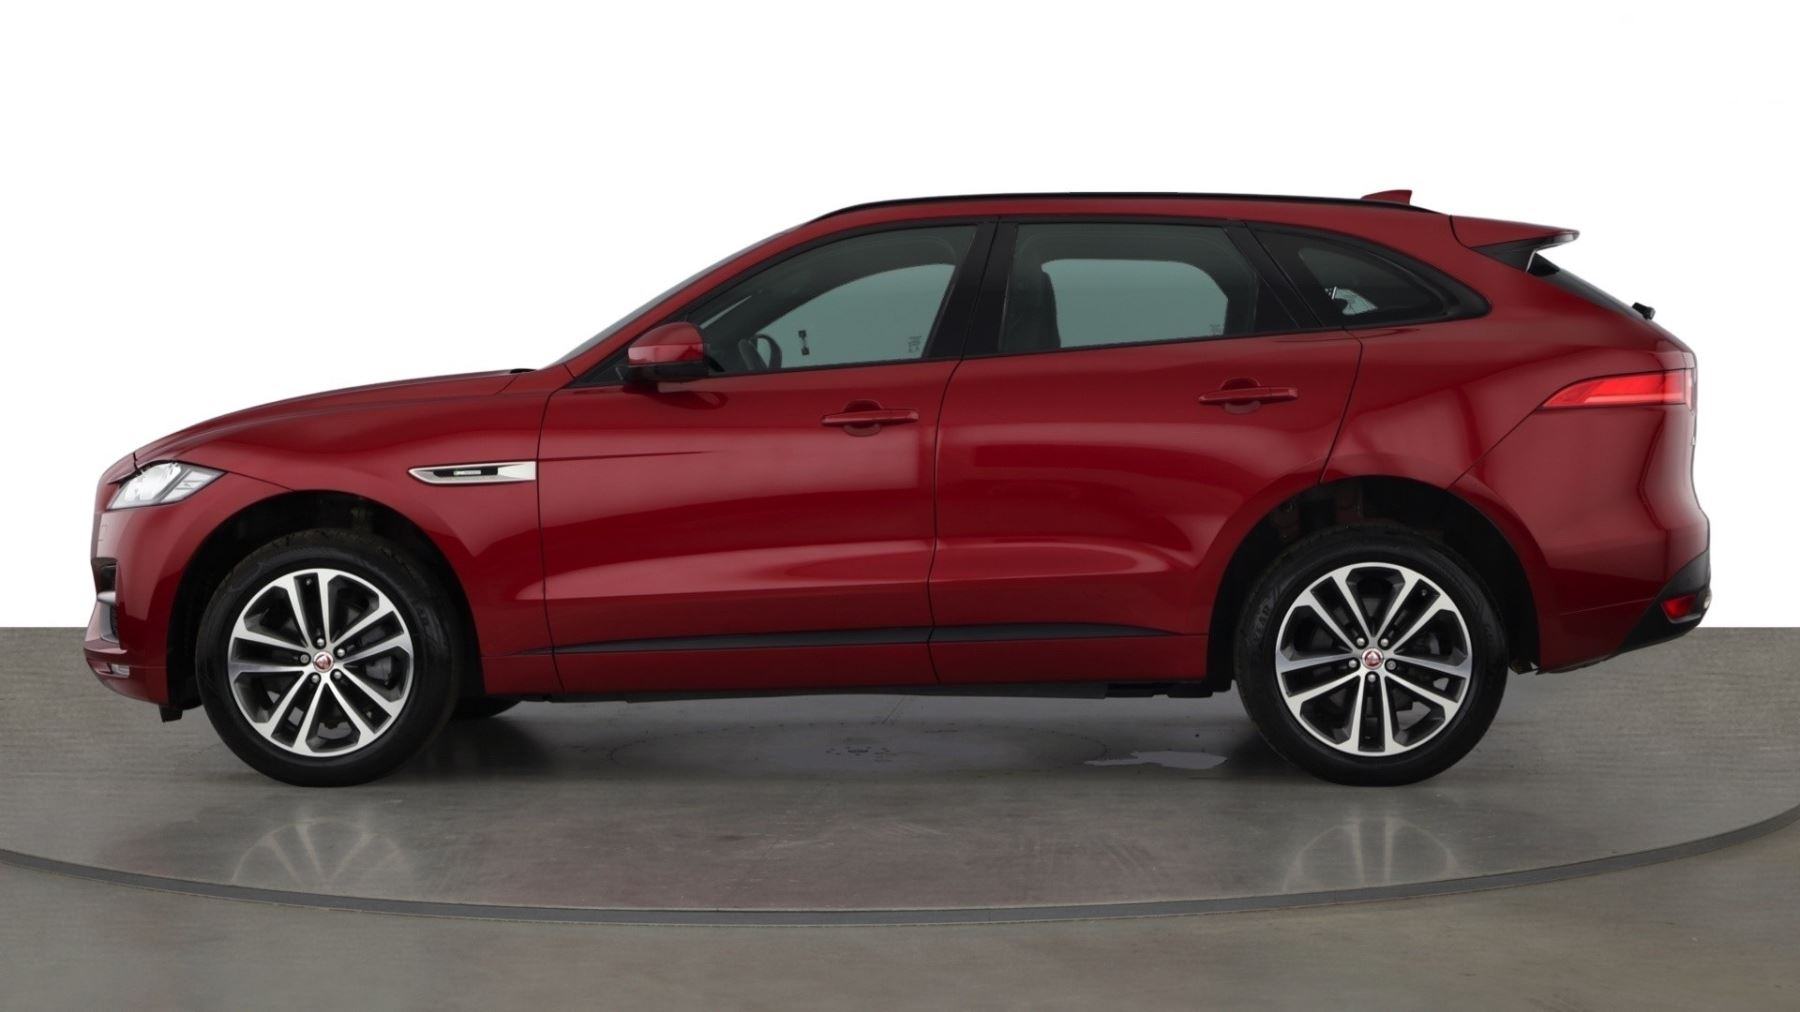 Jaguar F-PACE 2.0d R-Sport AWD - Sliding Panoramic Roof - Rear View Camera image 7